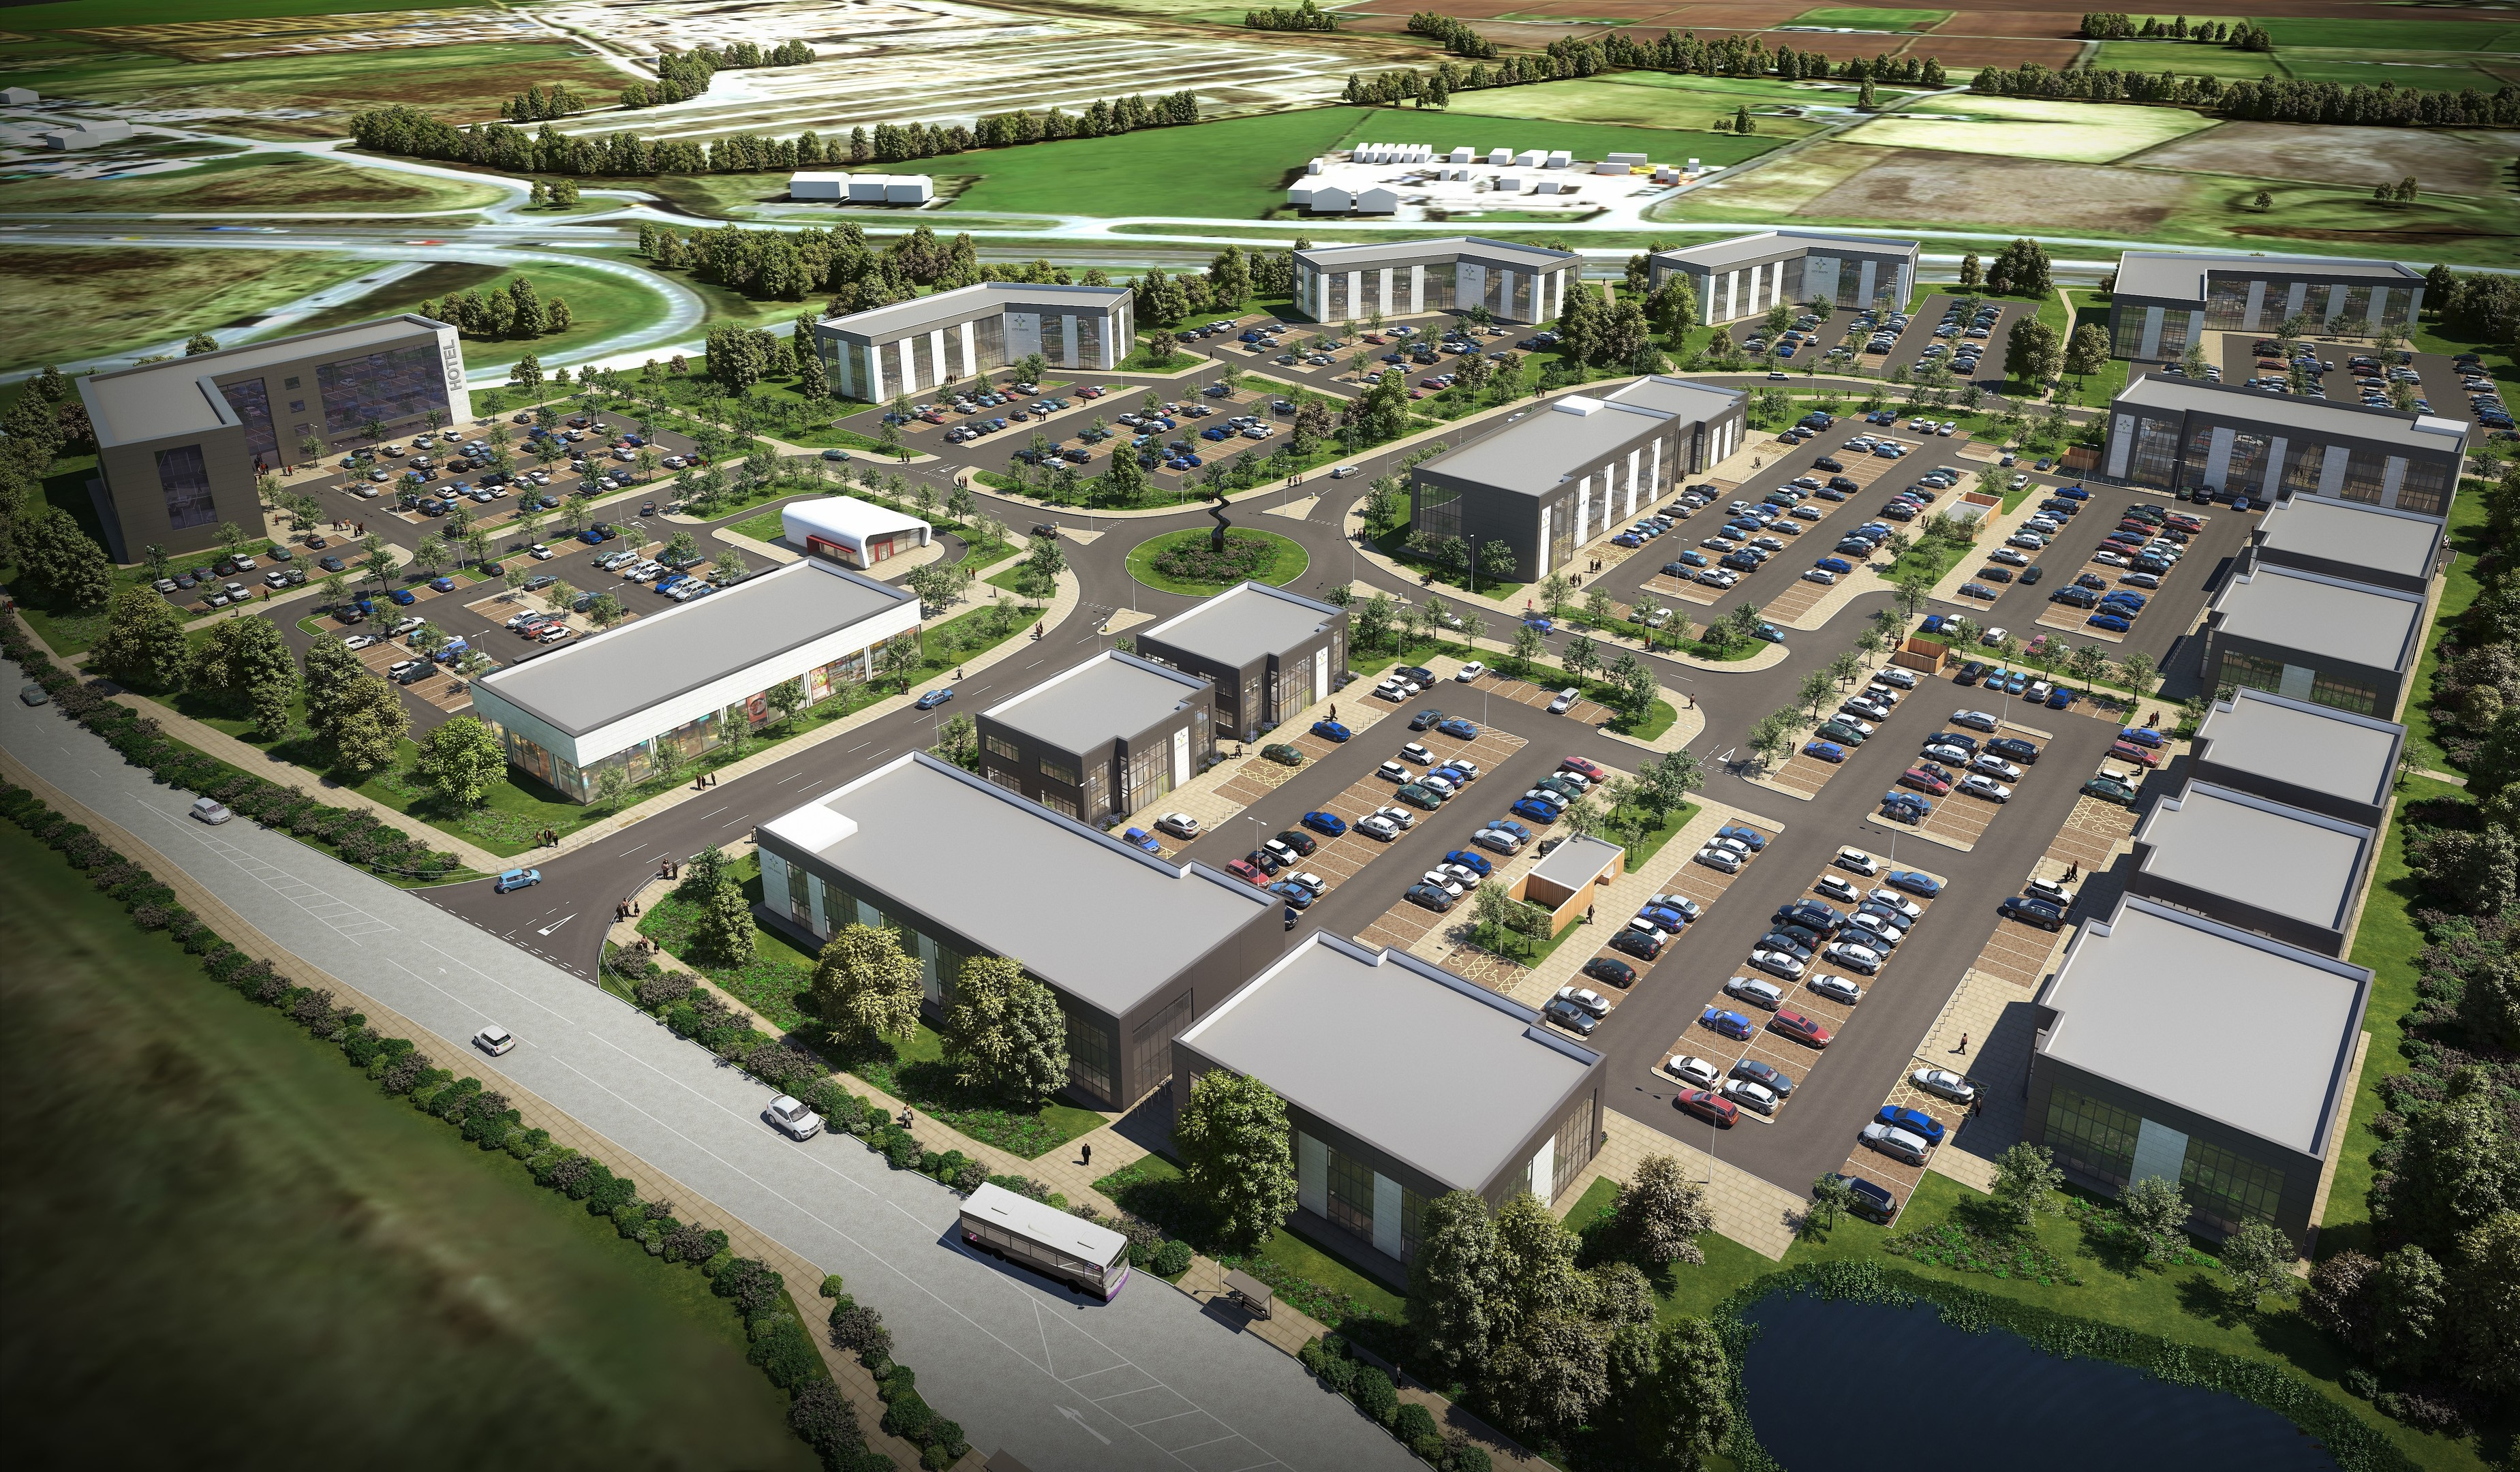 An artist's impression of how the completed development could look